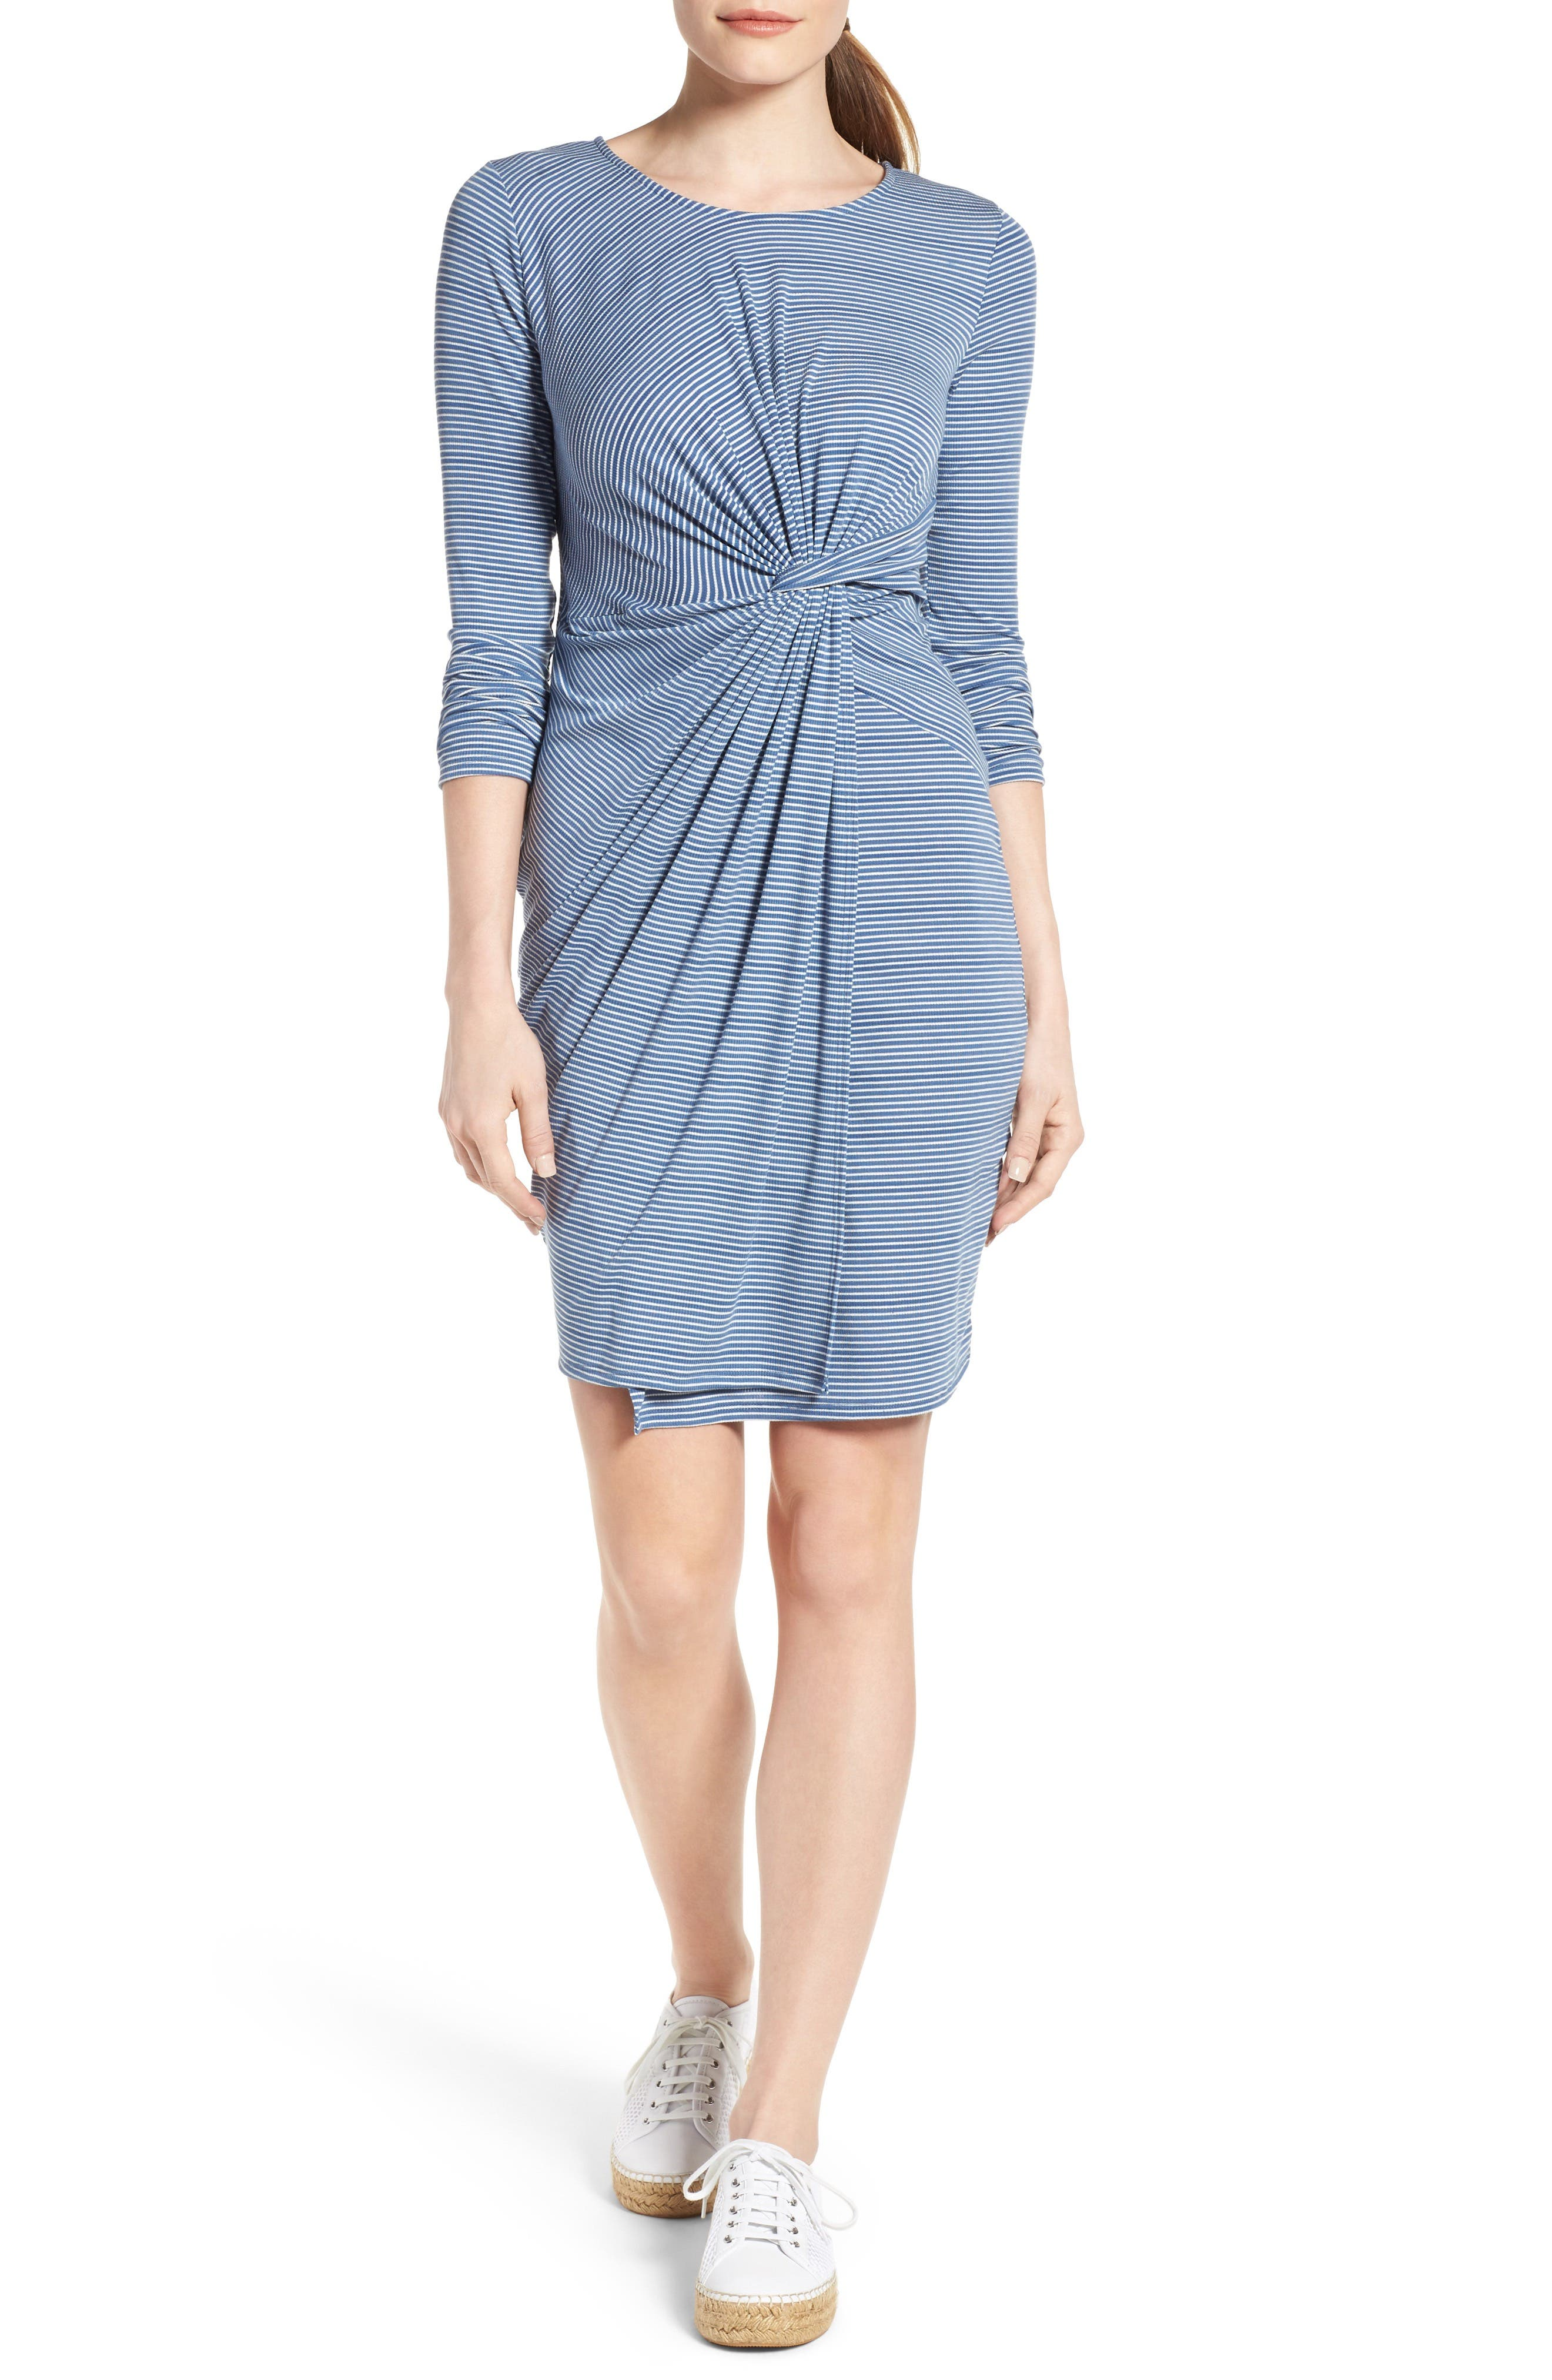 Alternate Image 1 Selected - Loveappella Stripe Twist Front Body-Con Dress (Petite)